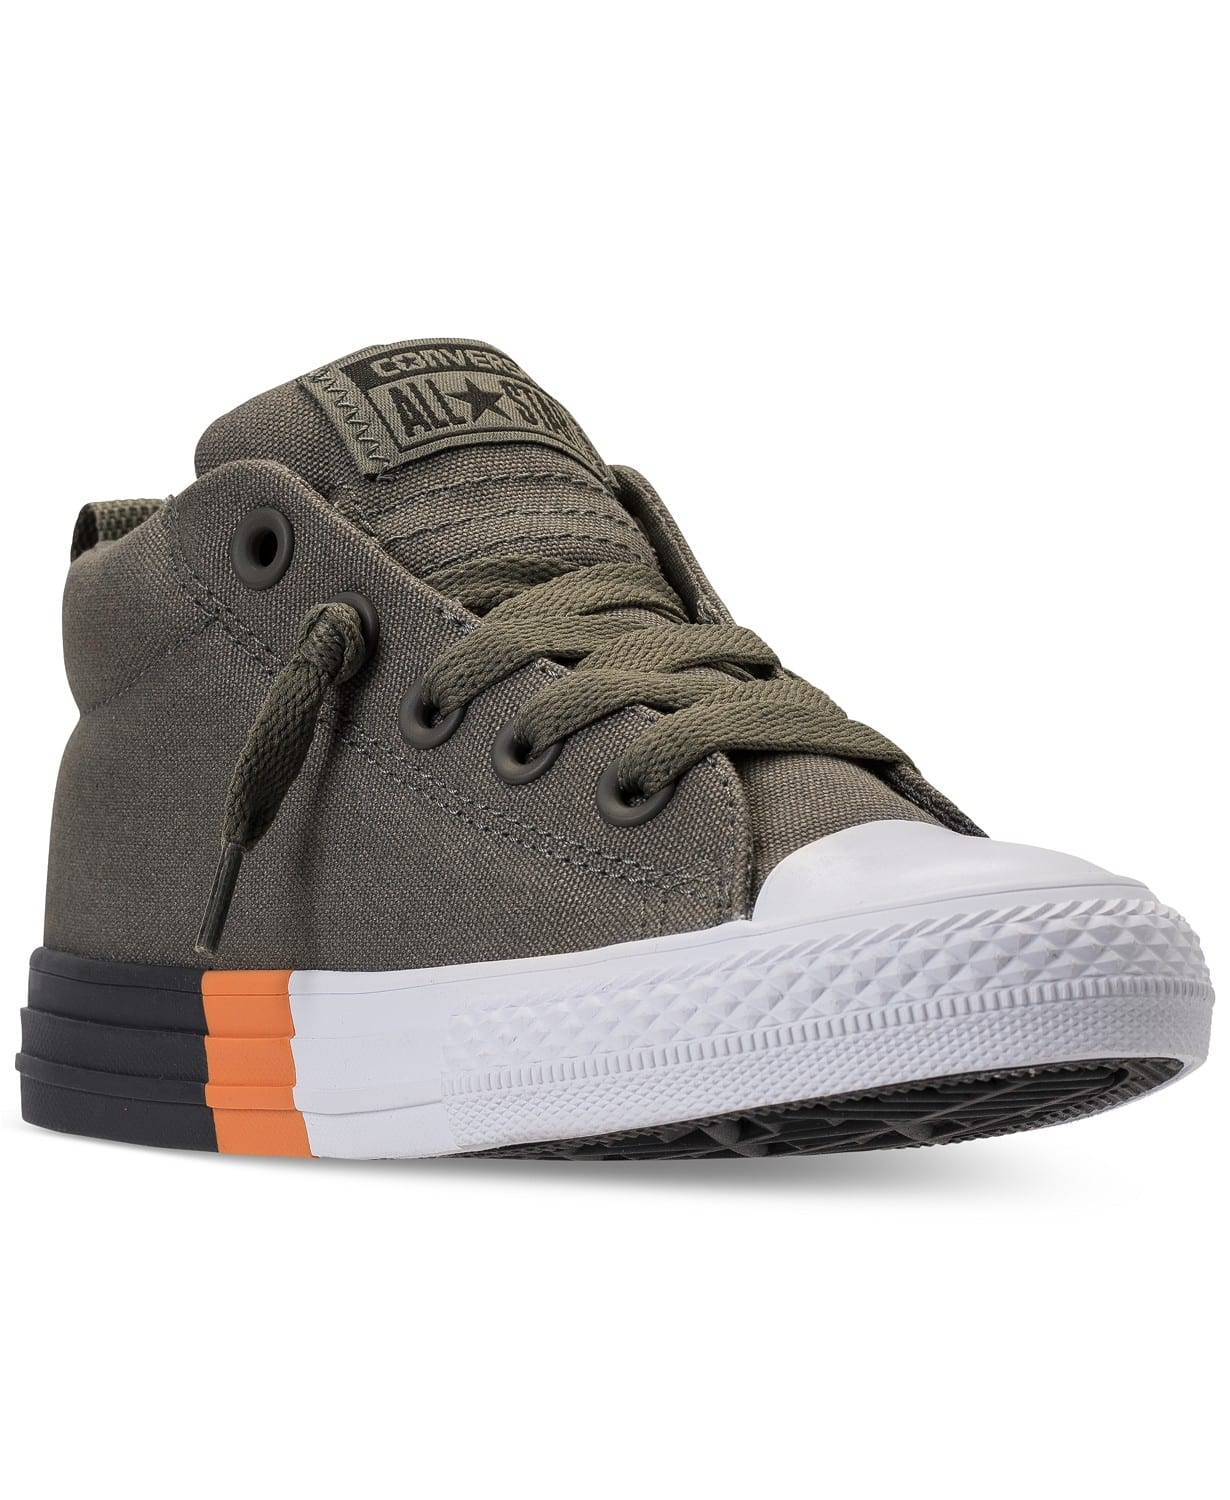 Chuck Taylor All Star Street Mid Casual Sneakers, $25 (reg. $50) and more Chuck Taylor Sneakers with Various Sizes and Colors all below $40